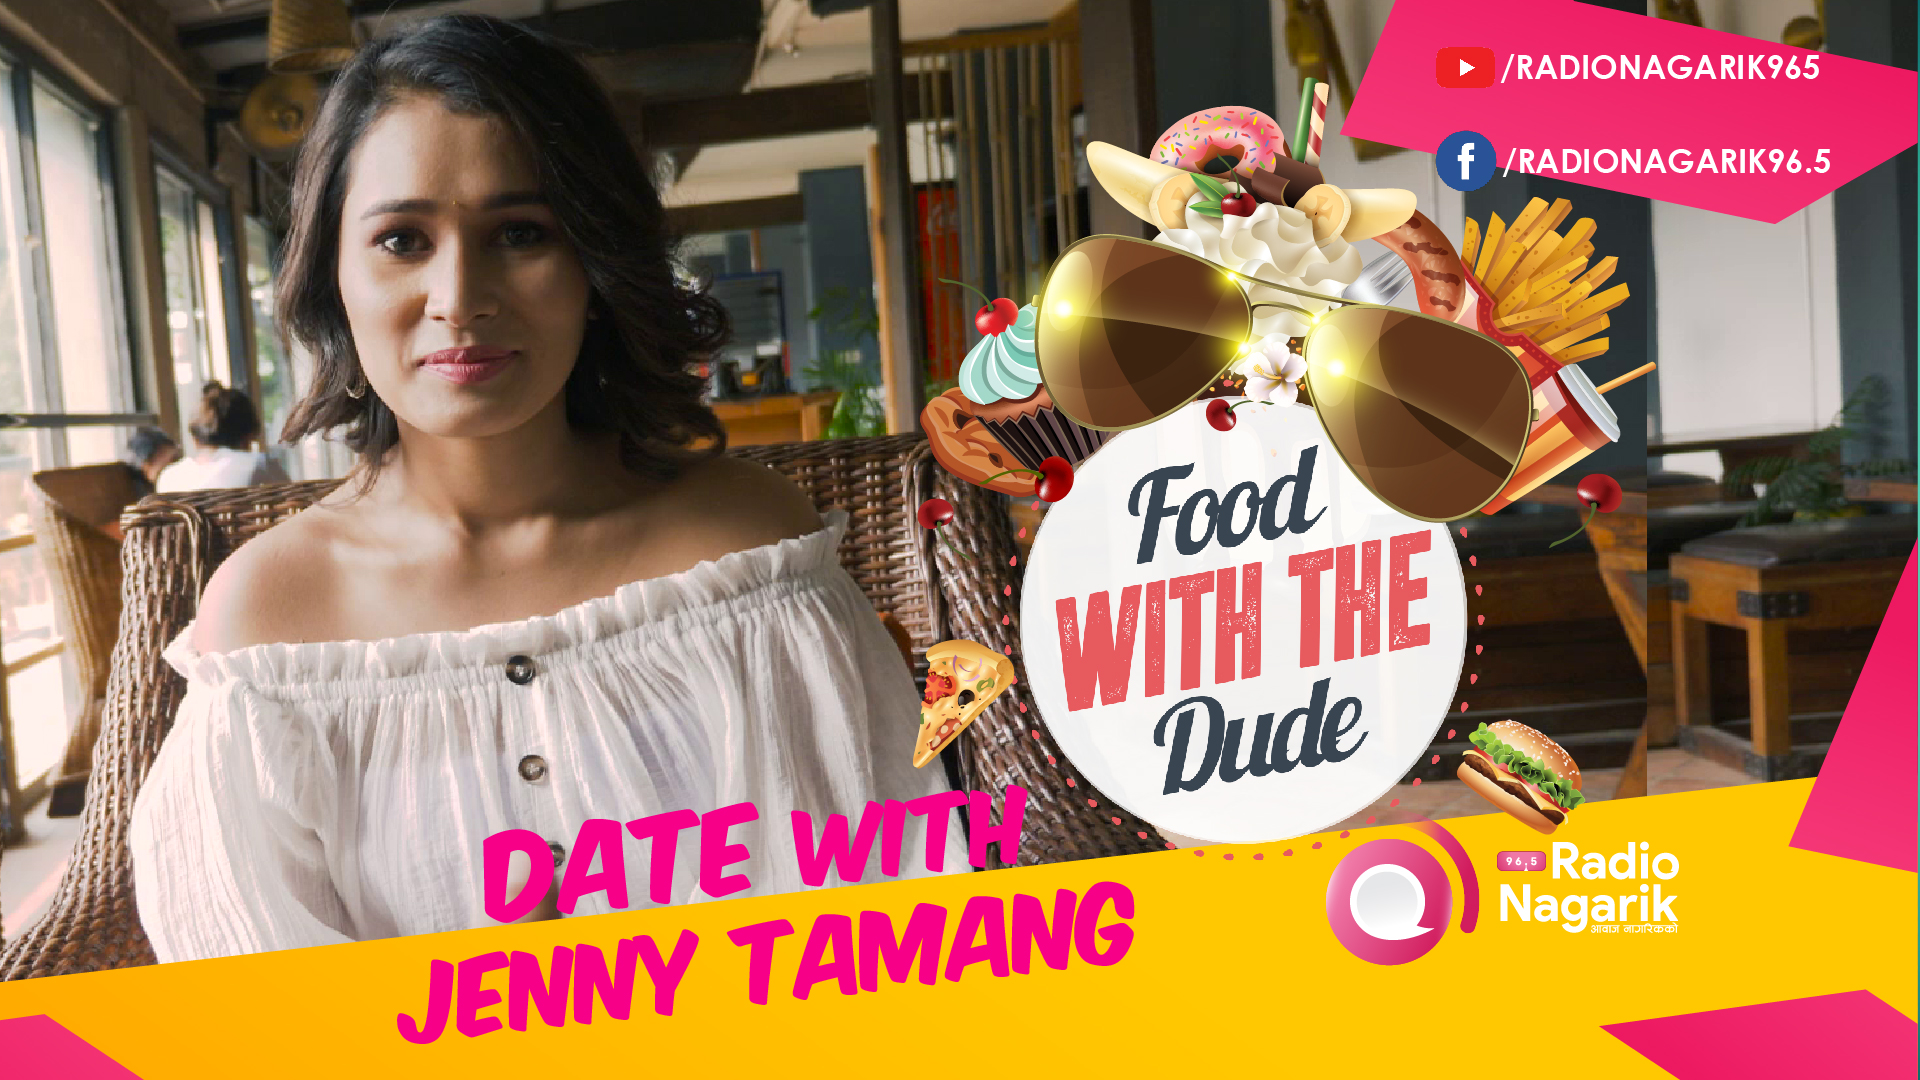 Date with JENNY TAMANG | DJ Jenny in the house! - DATE 9 | #FoodWithTheDude